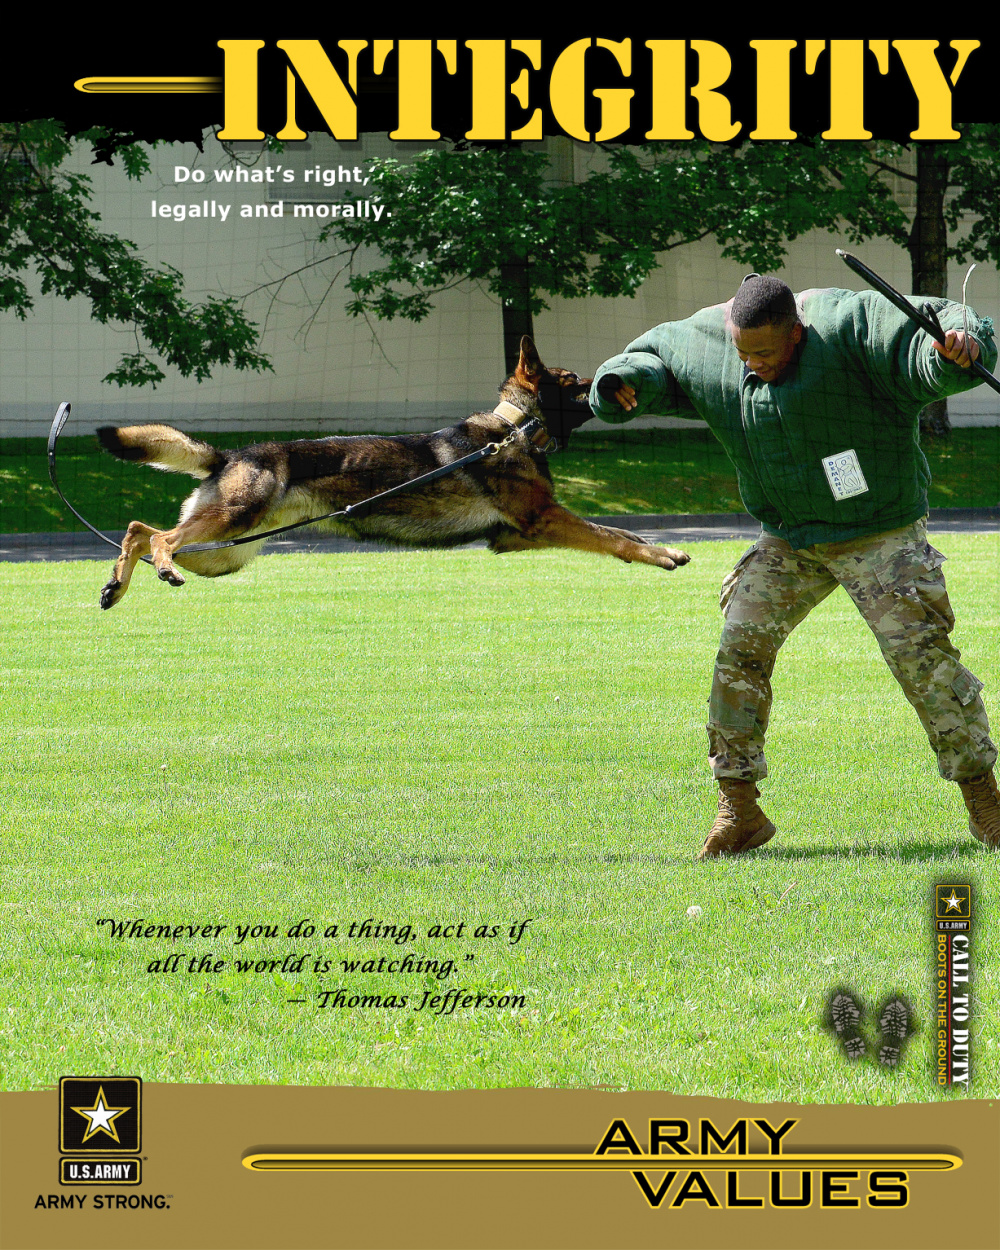 Army values - Integrity